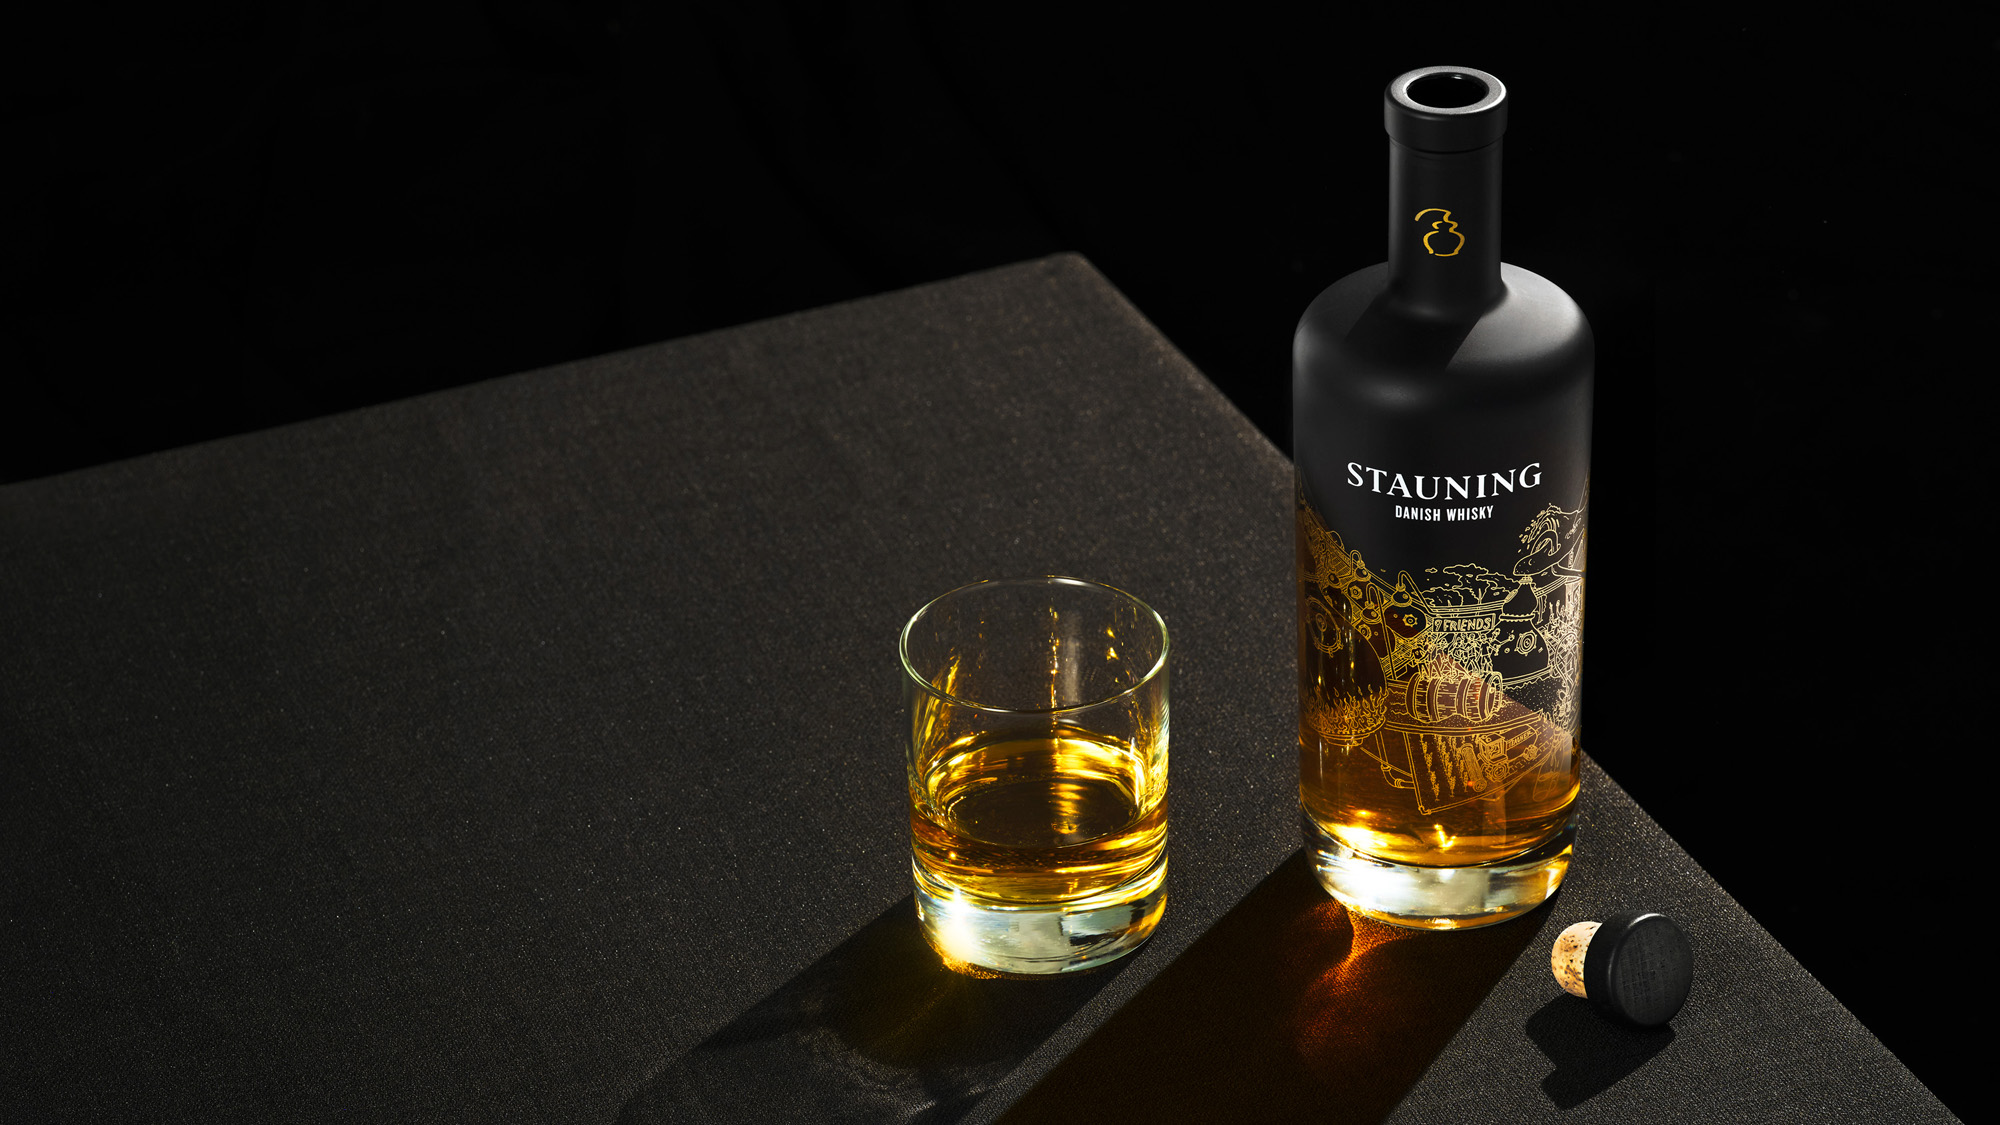 Modern Stauning Danish Whisky Brand and Packaging Design Created by Everland